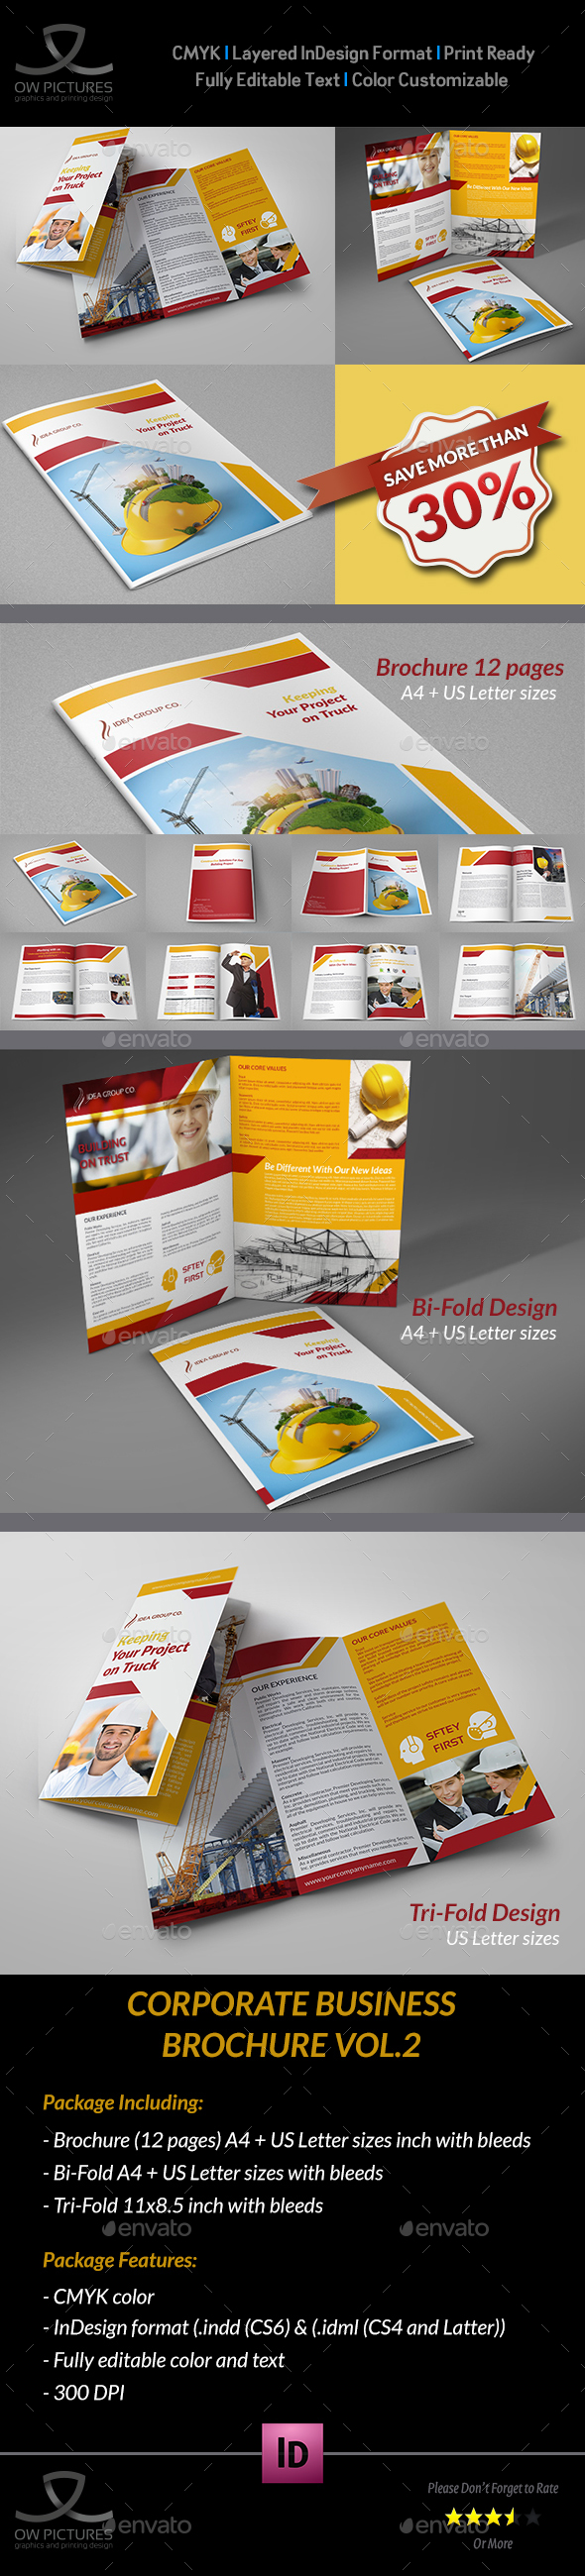 Construction Company Brochure Bundle Vol.2 - Corporate Brochures